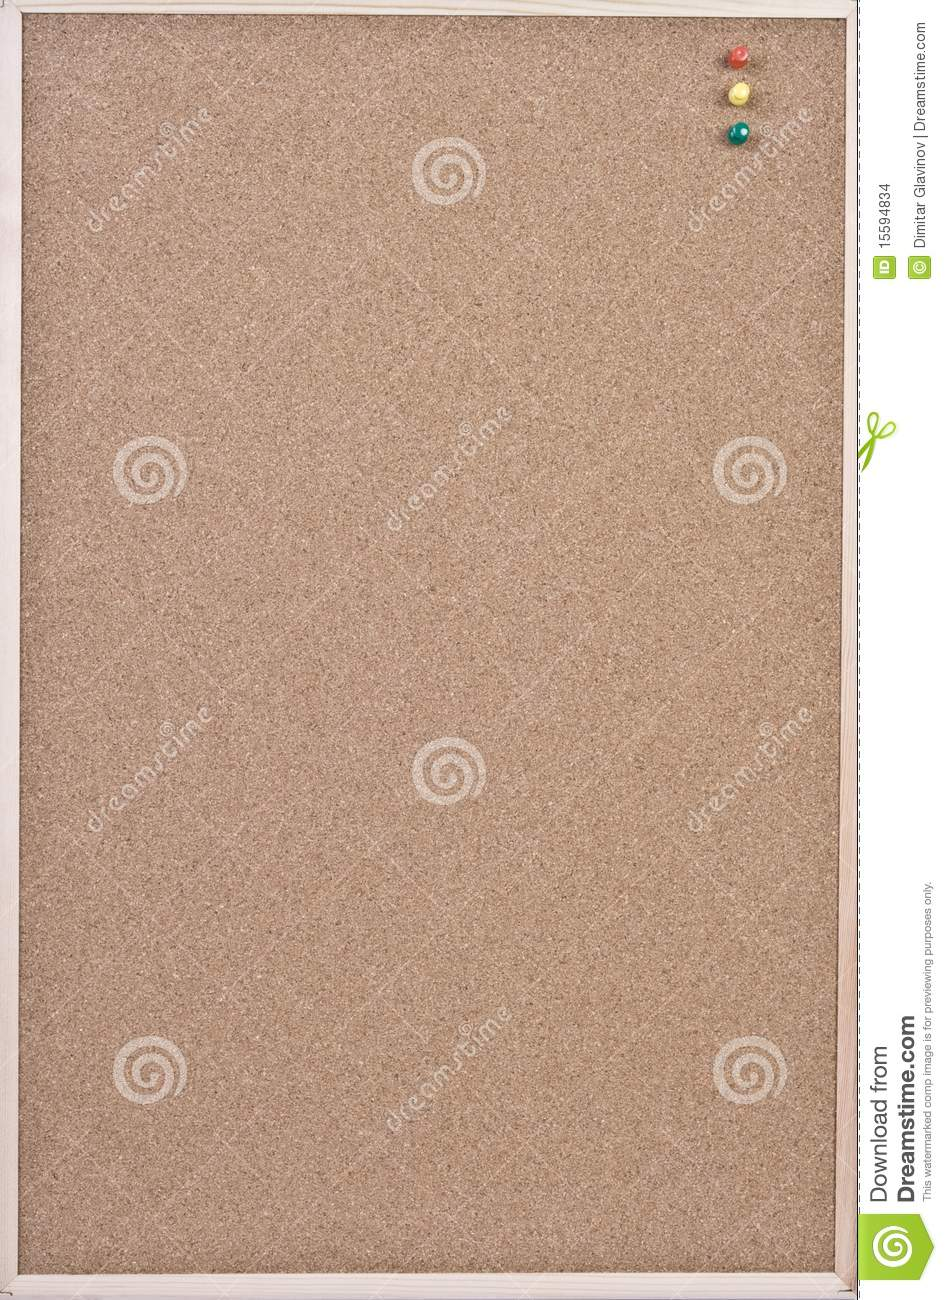 blank cork board - photo #32